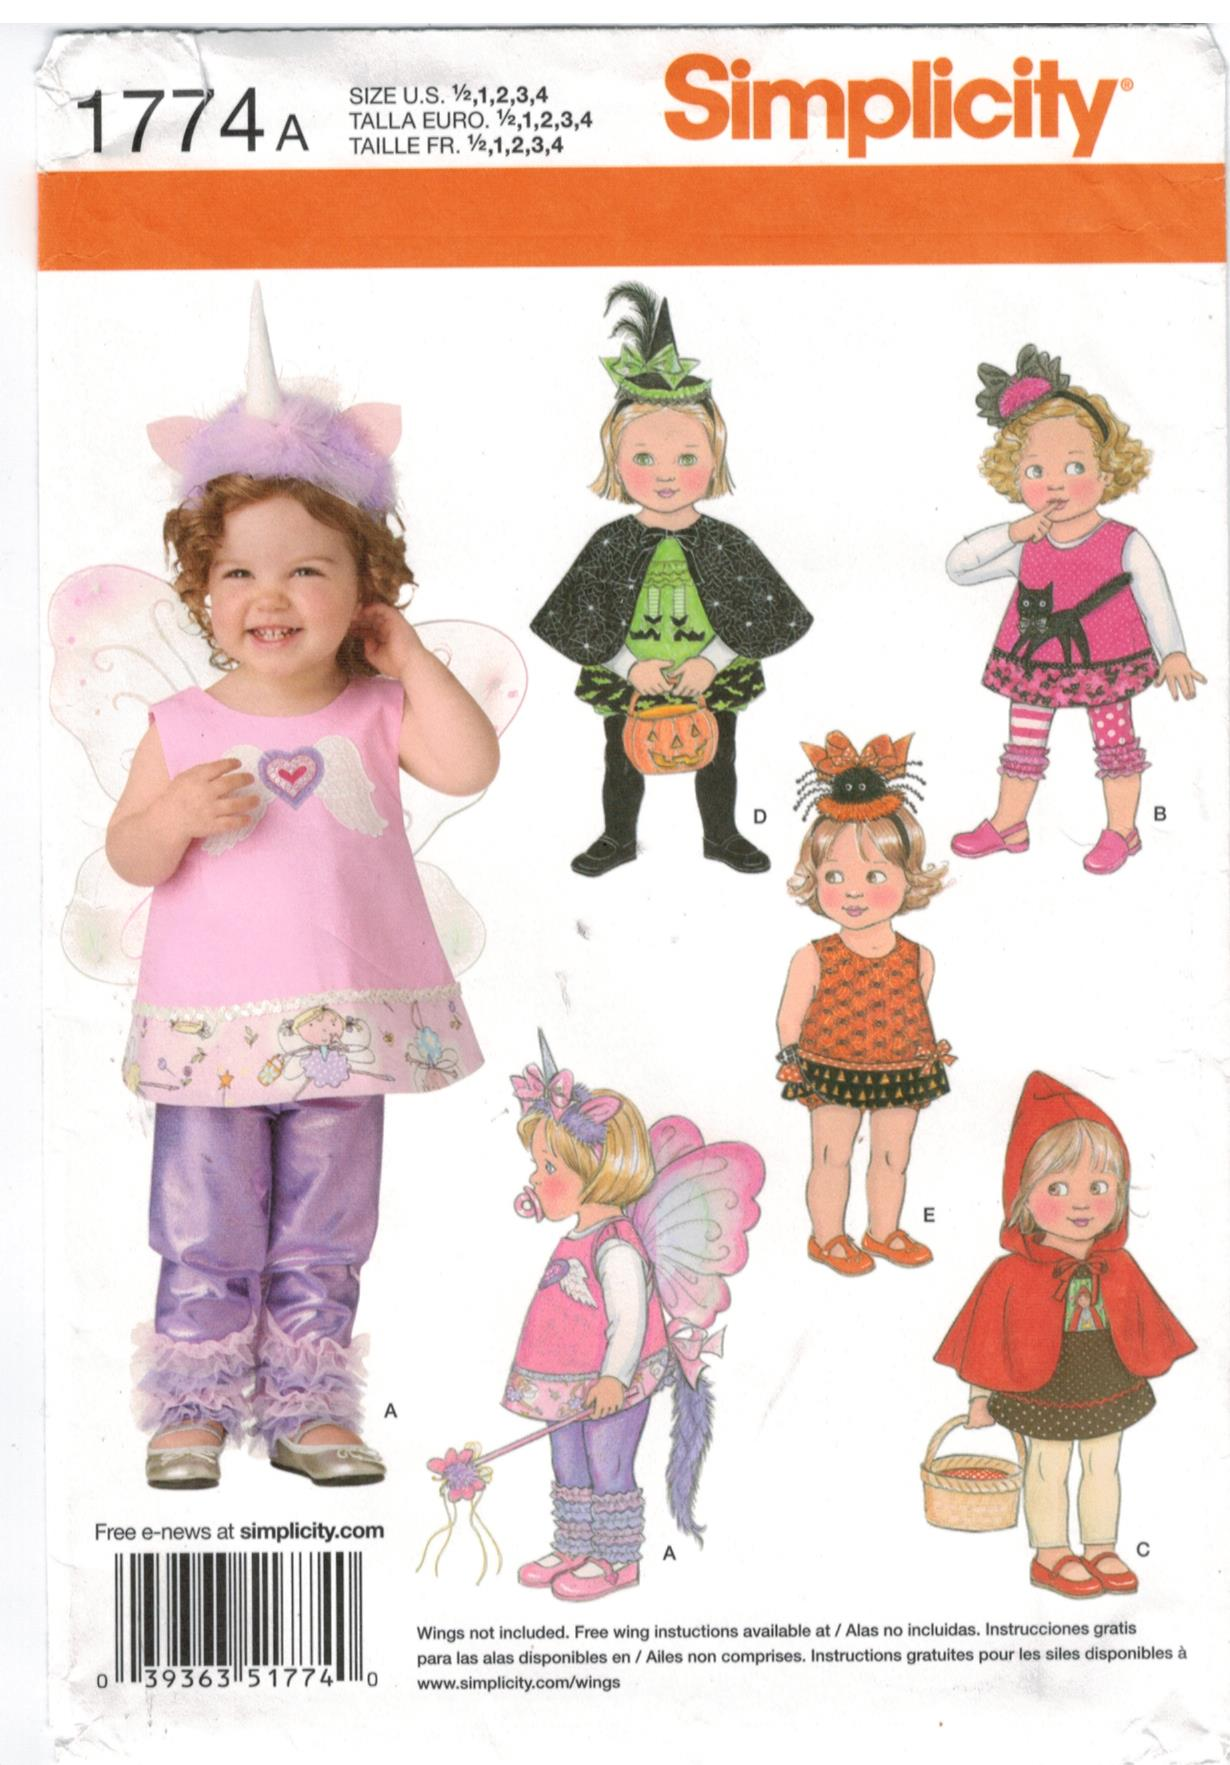 Simplicity Pattern 1774 Toddler Costumes Riding Hood,m Butterfly, Witch and  more Sizes 1/2 - 4